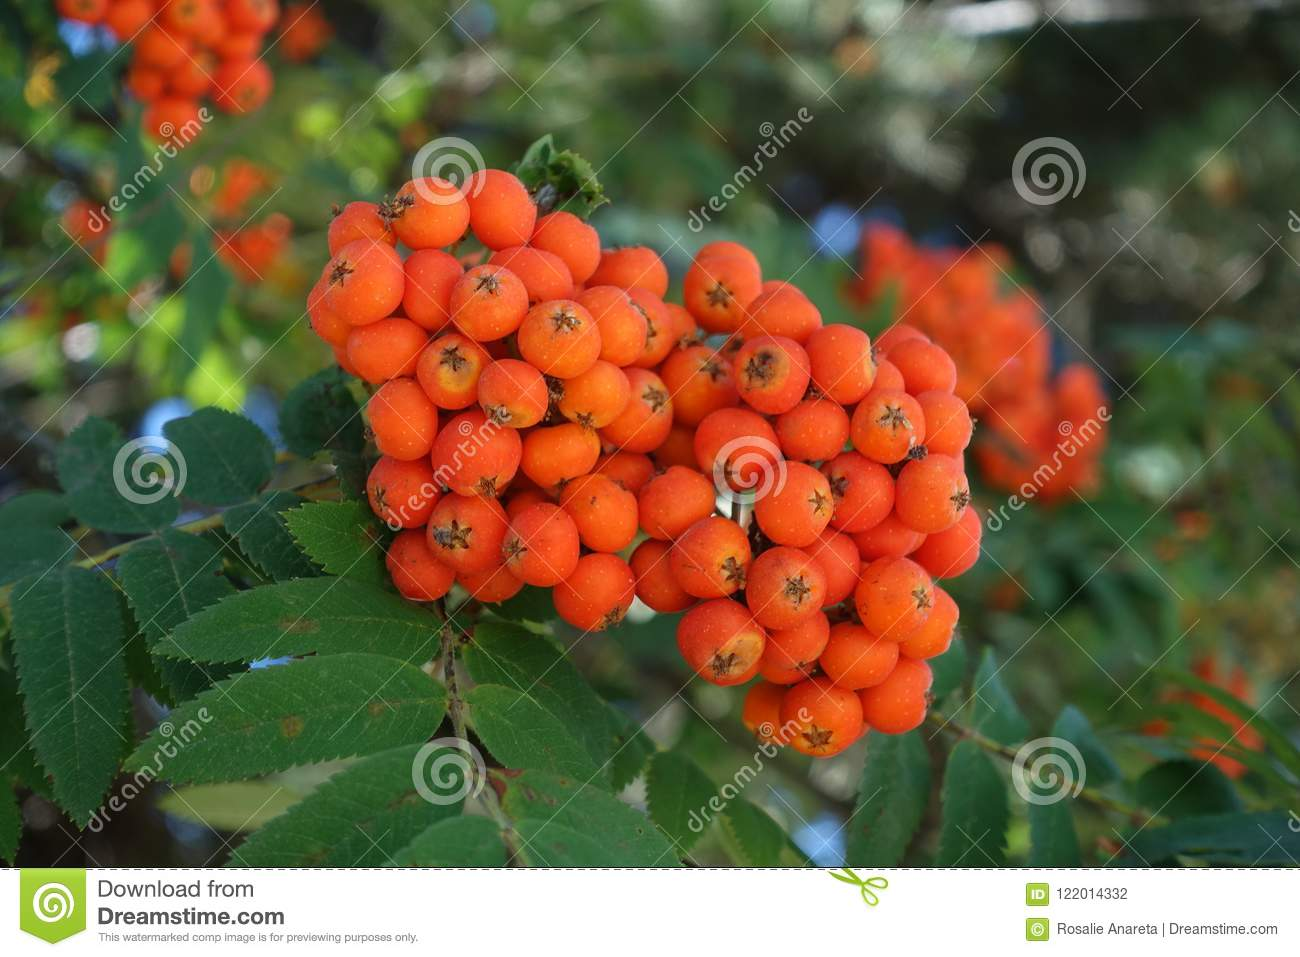 A branch of Rowanberry fruit